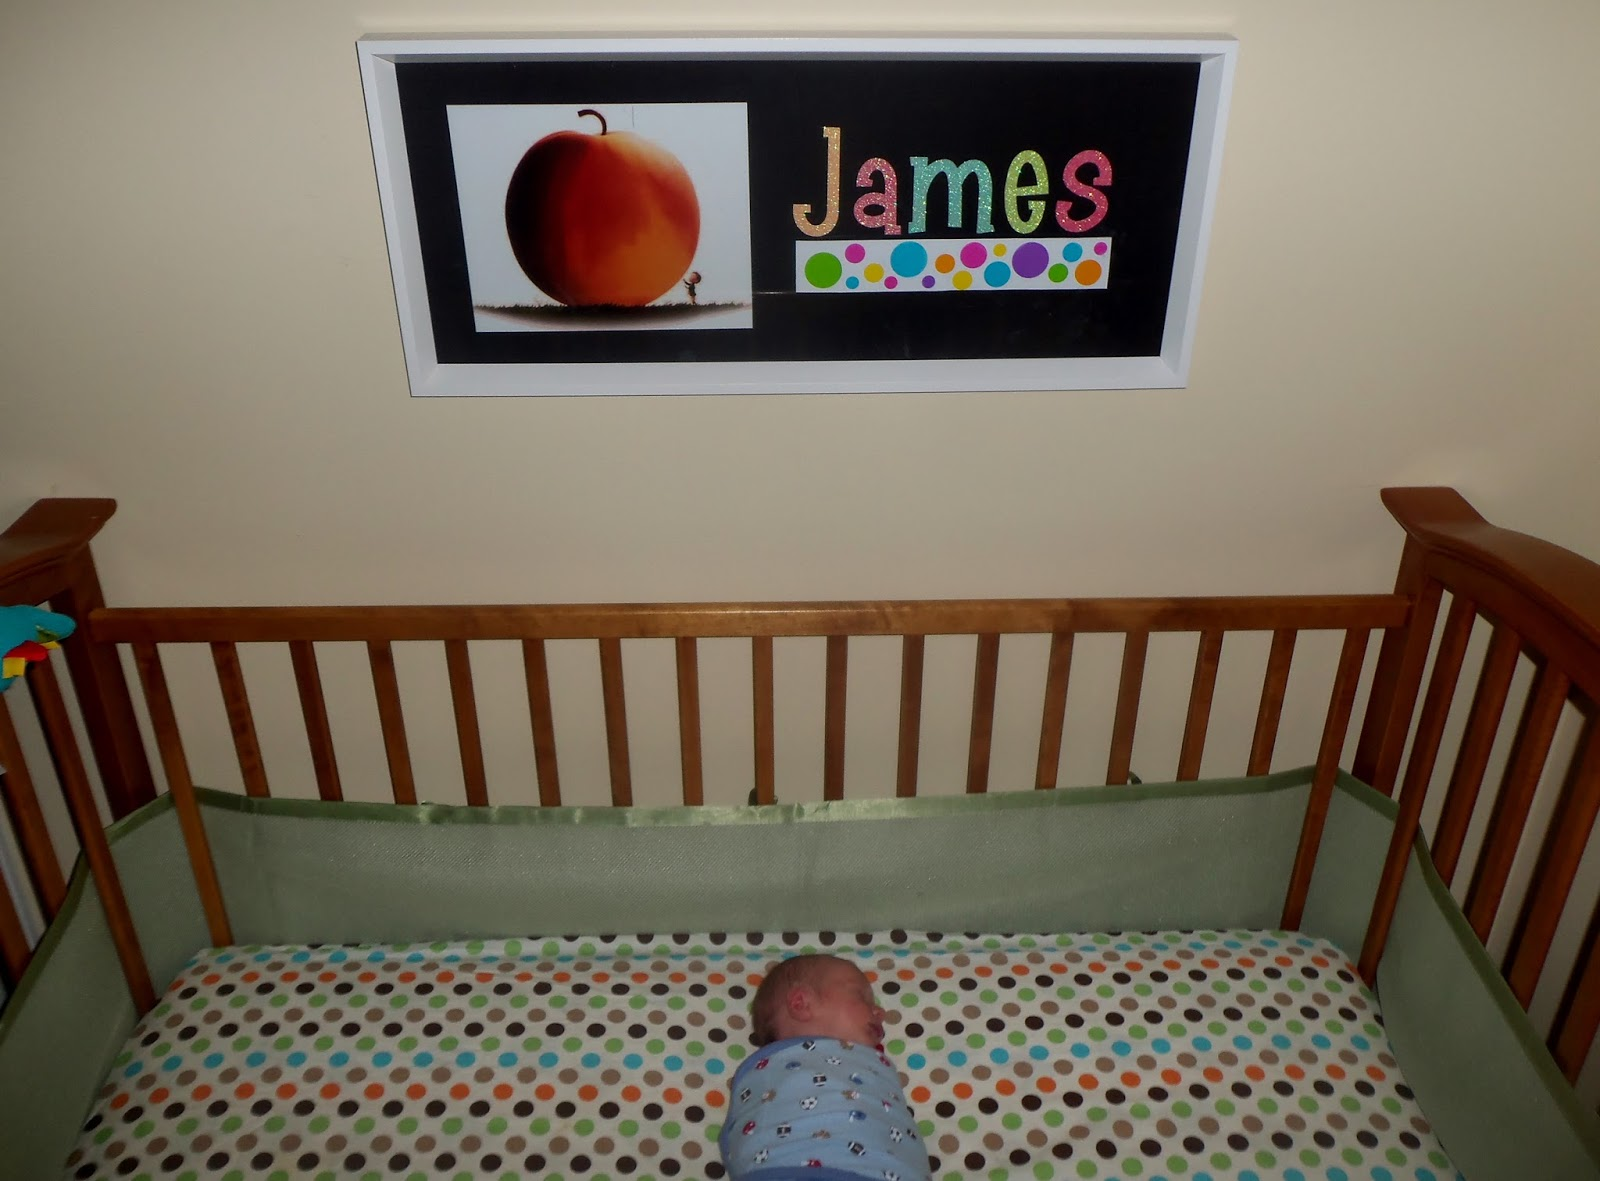 Crib for triplet babies - For The Past Two Weeks The Babies Have Nursed Around 9 Pm Then Wake Up Again At Midnight For Their First Nightly Feed Jesse Unswaddles Them Changes